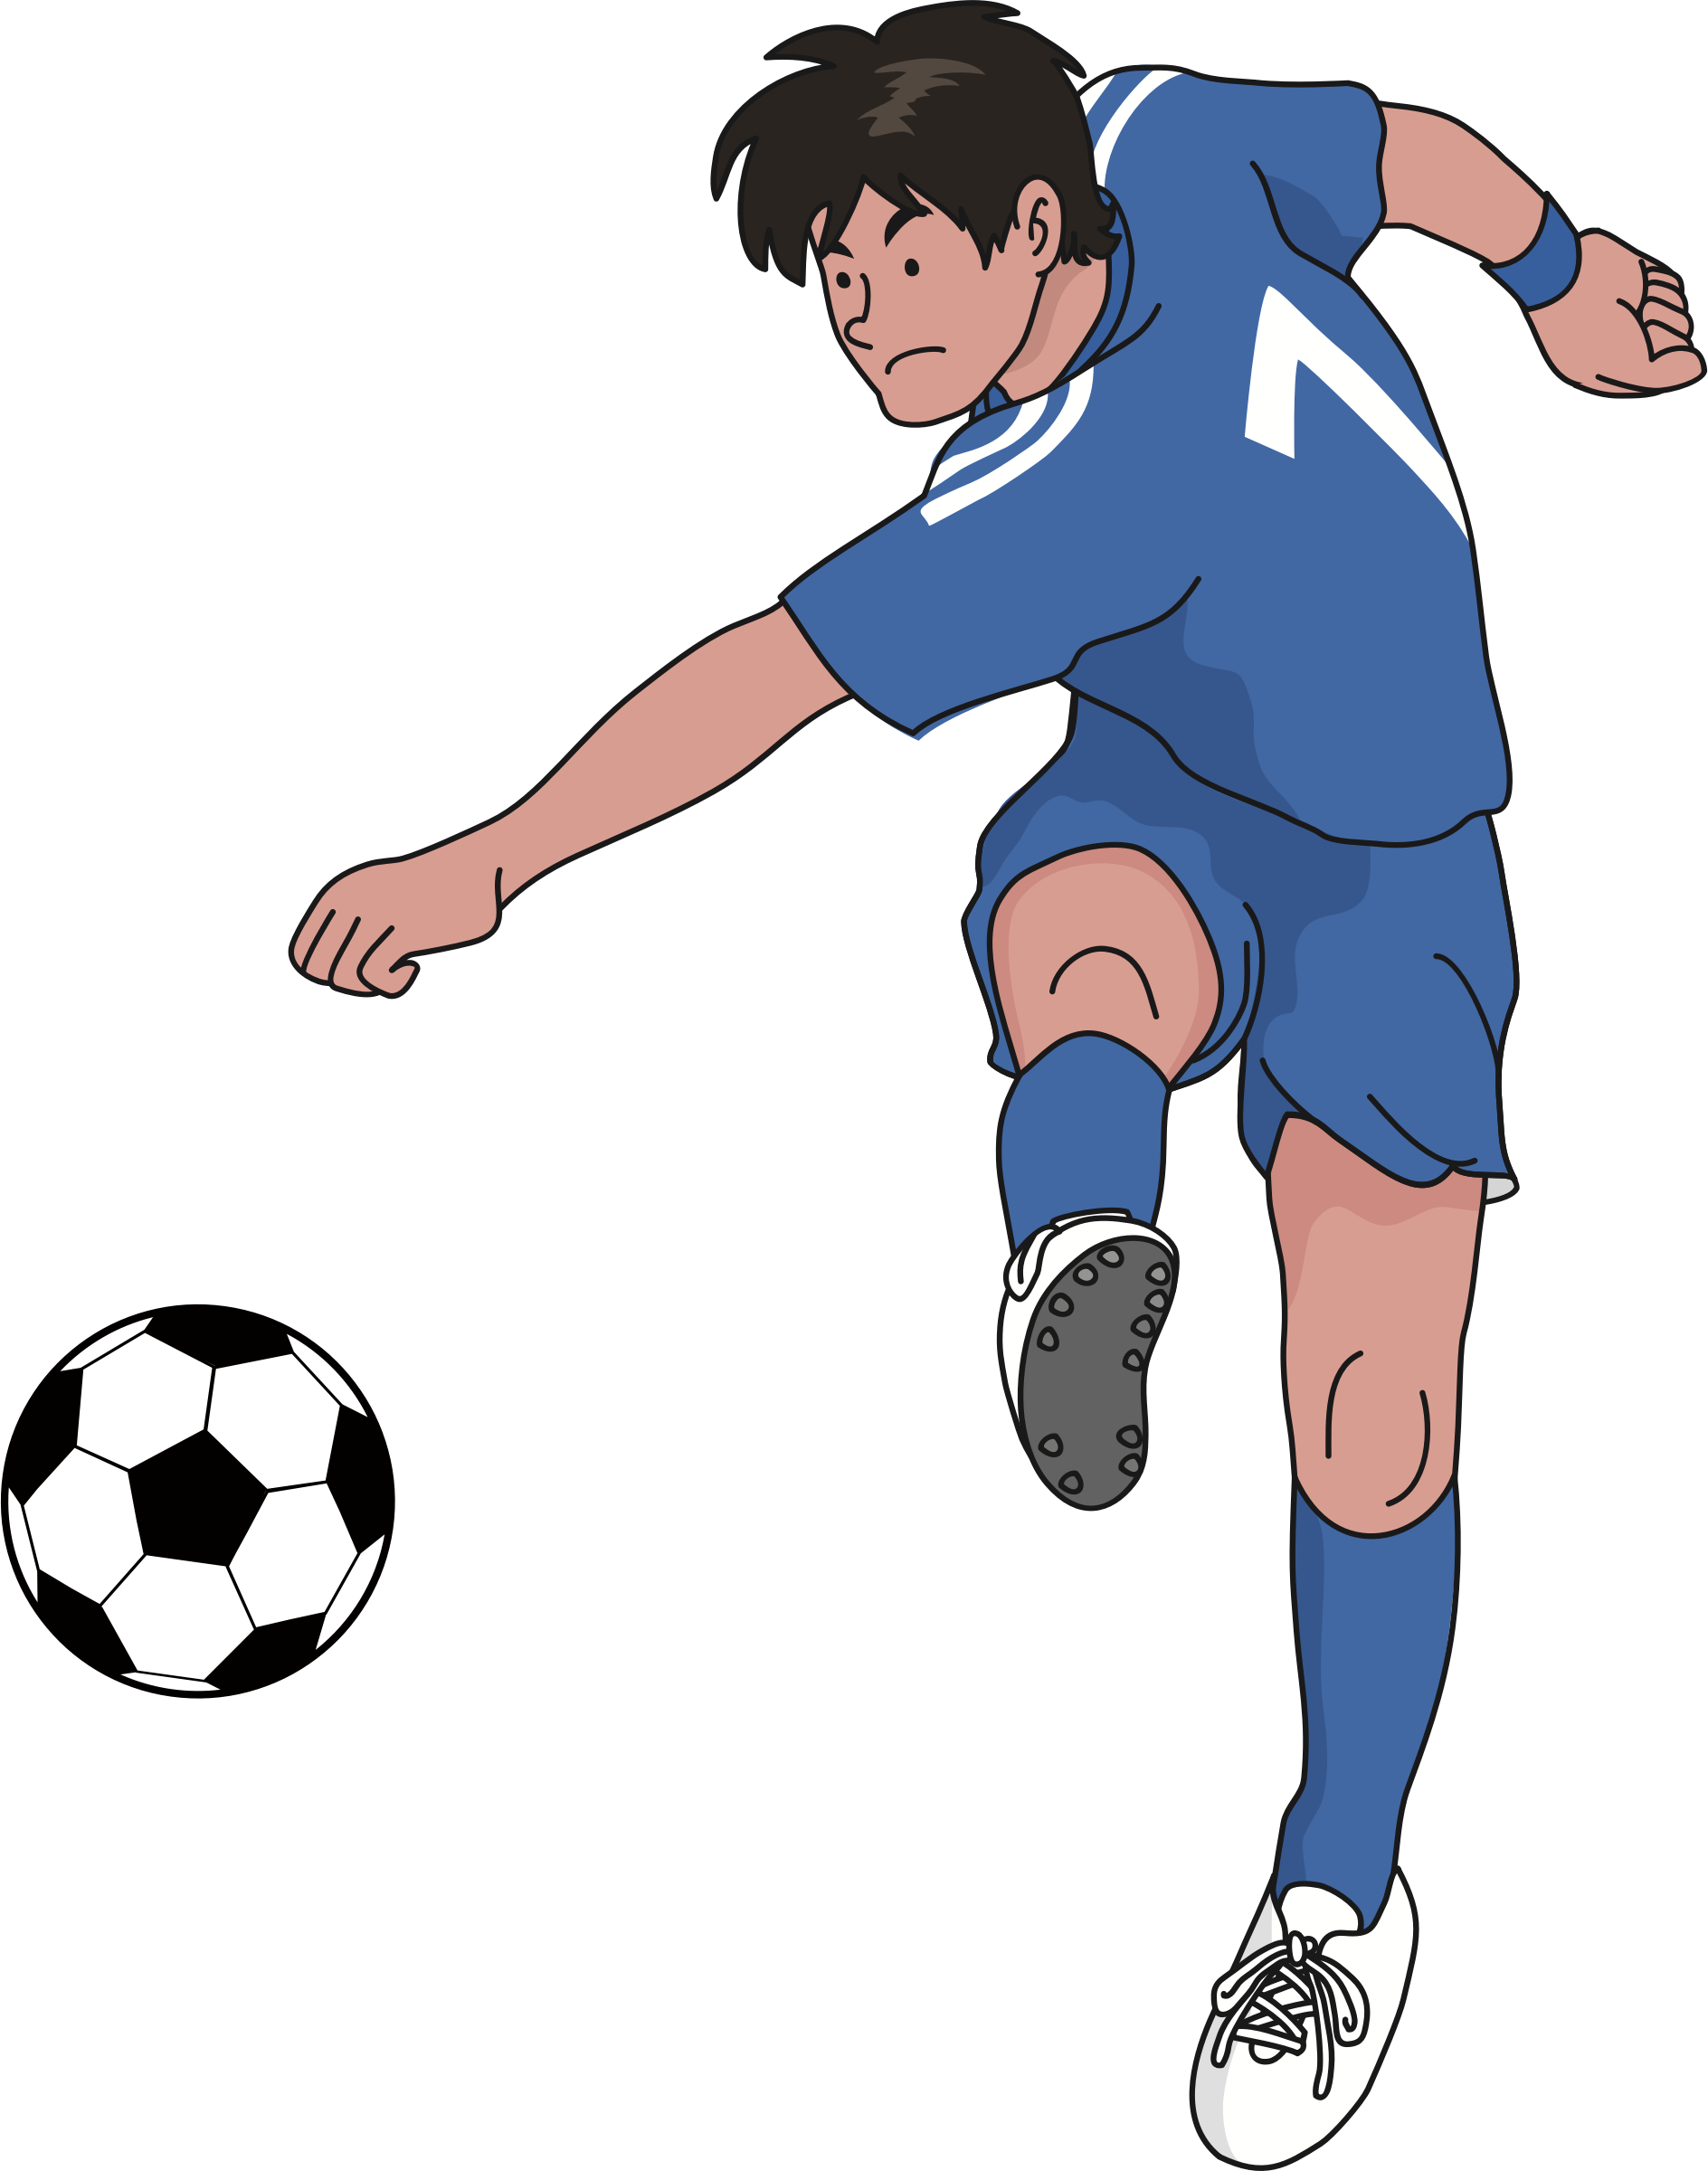 Soccer player clipart png. Big image